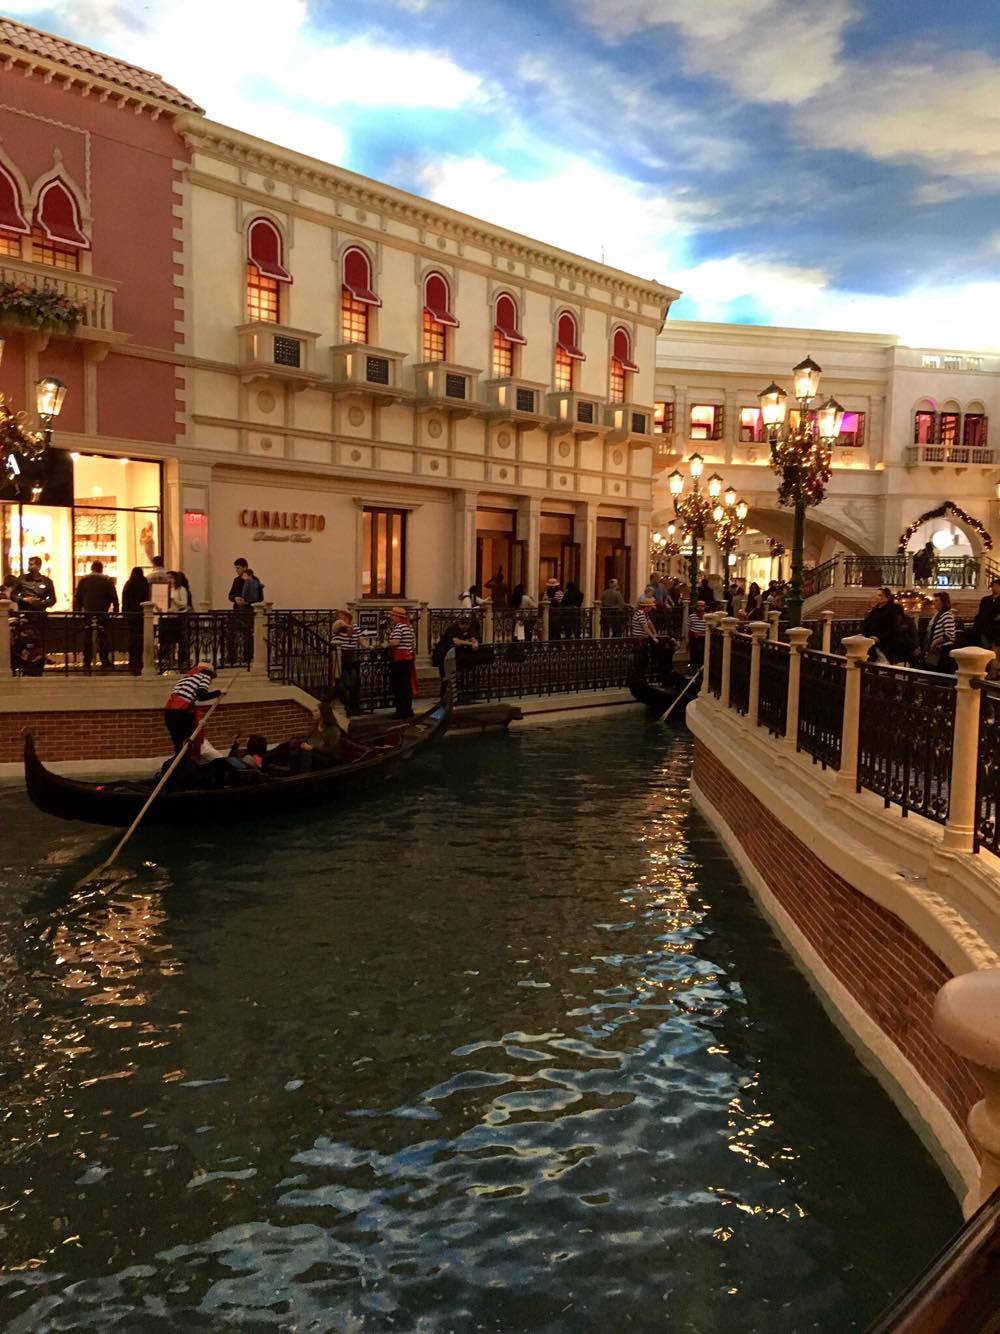 Gondola rides are still available in the Venetian